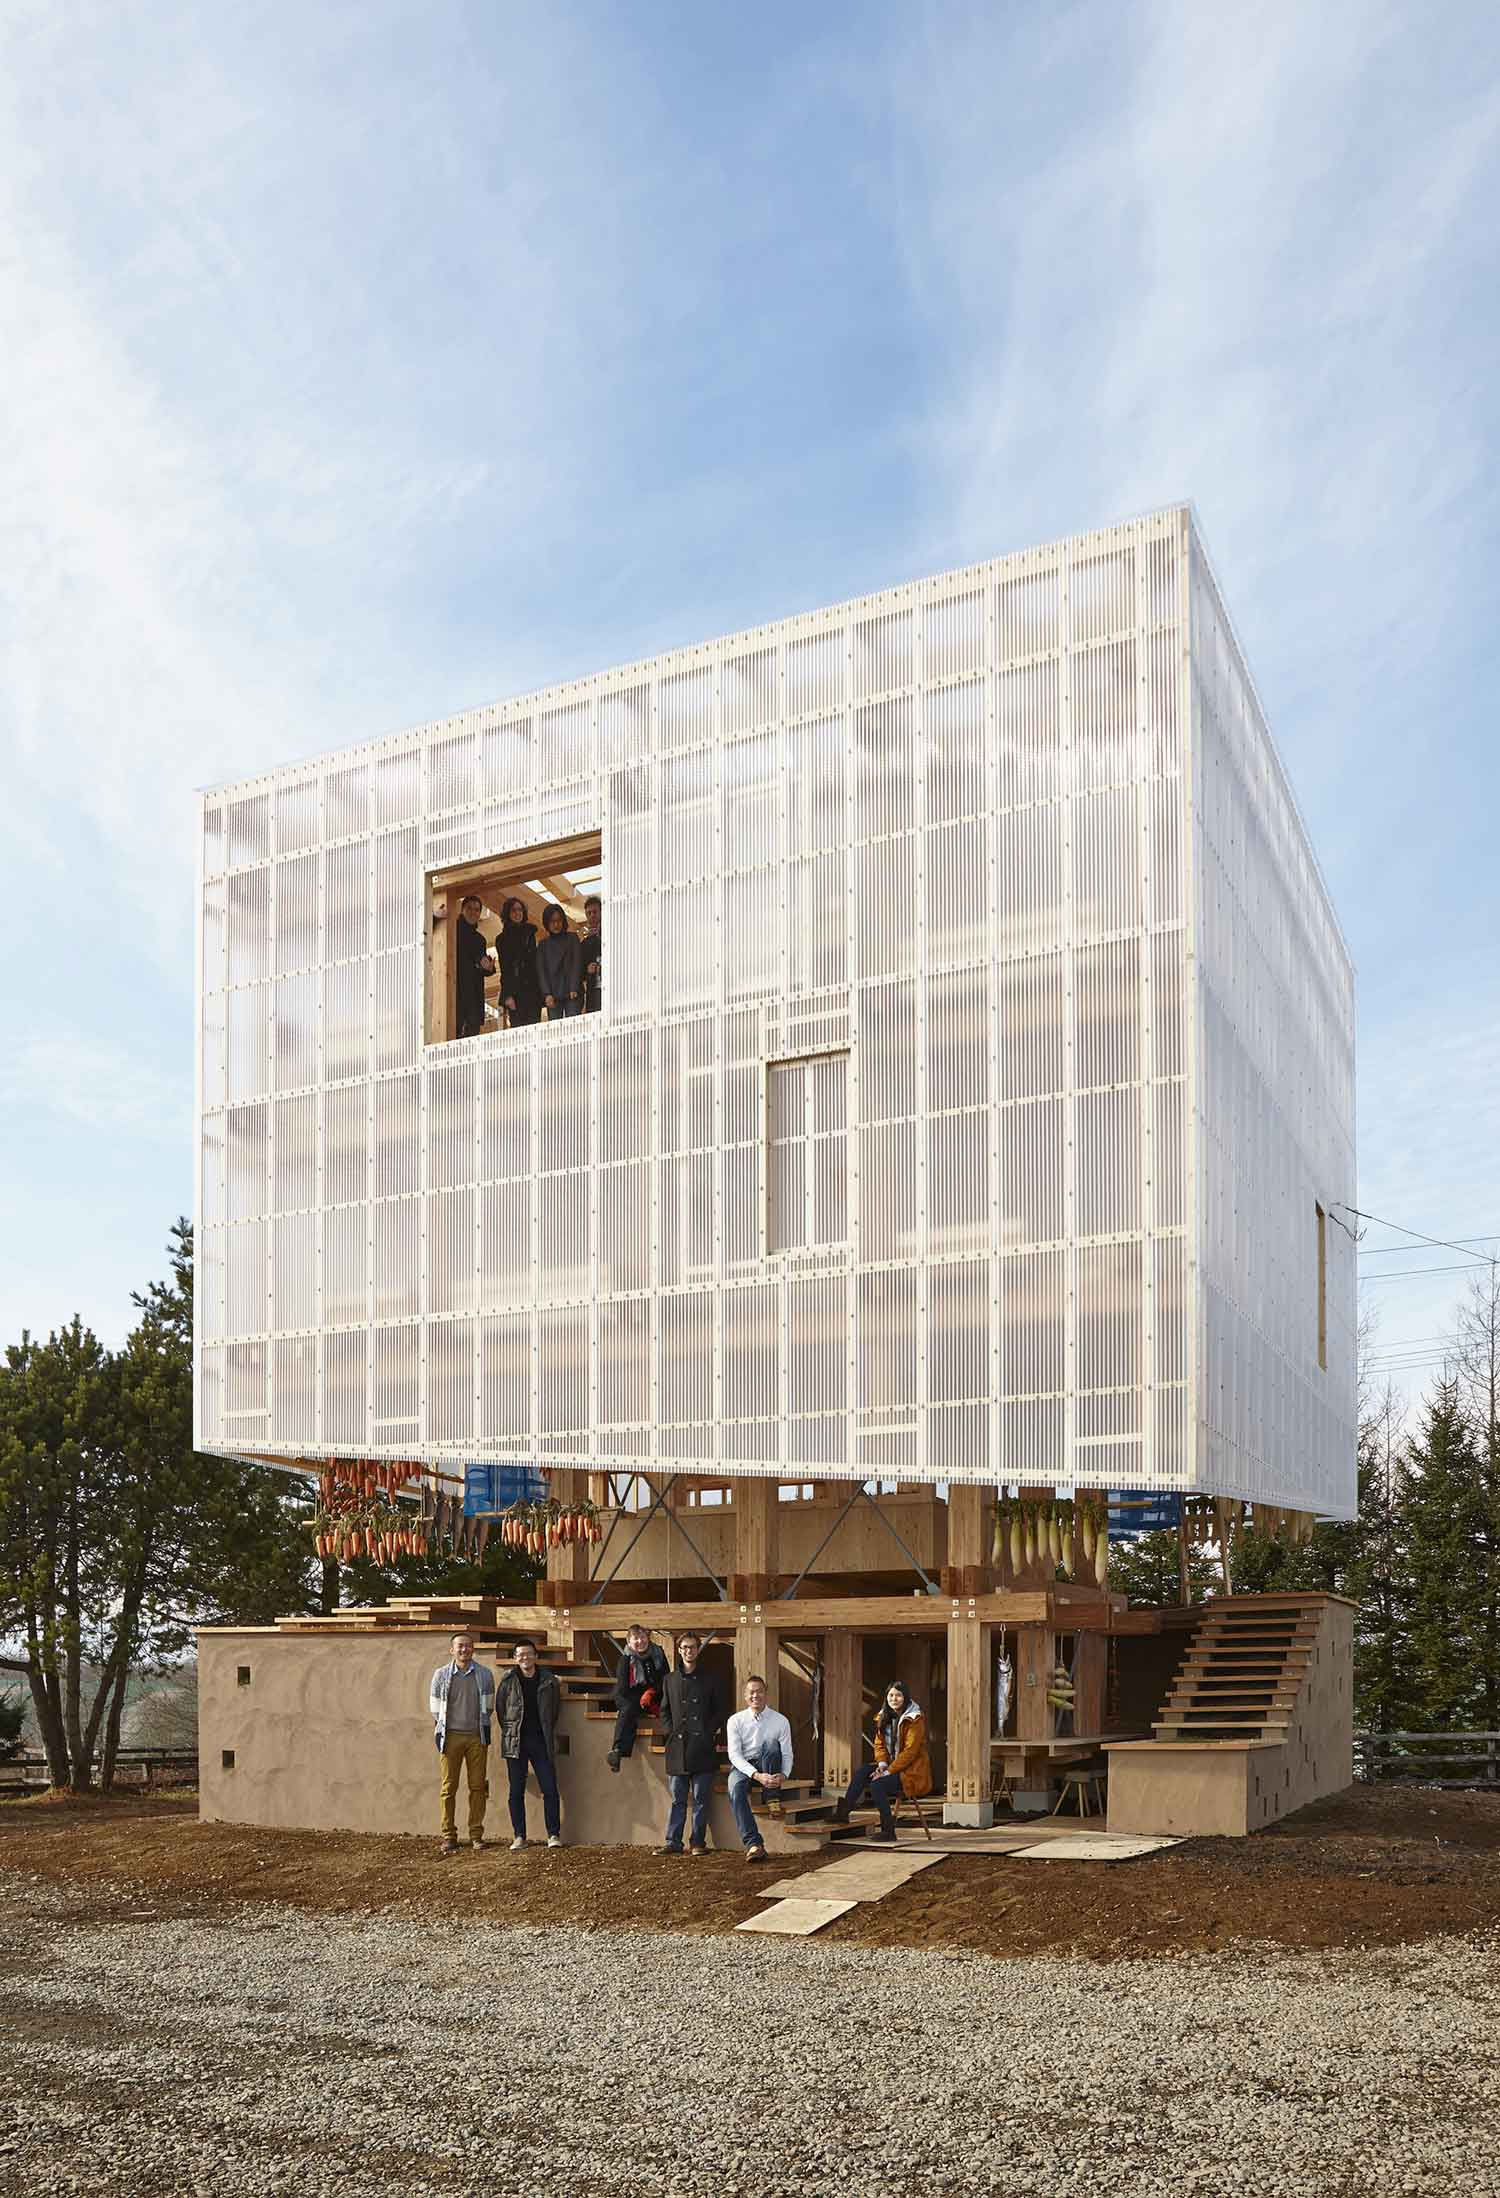 Design By: Nest We Grow By Kengo Kuma + UC Berkeley Students